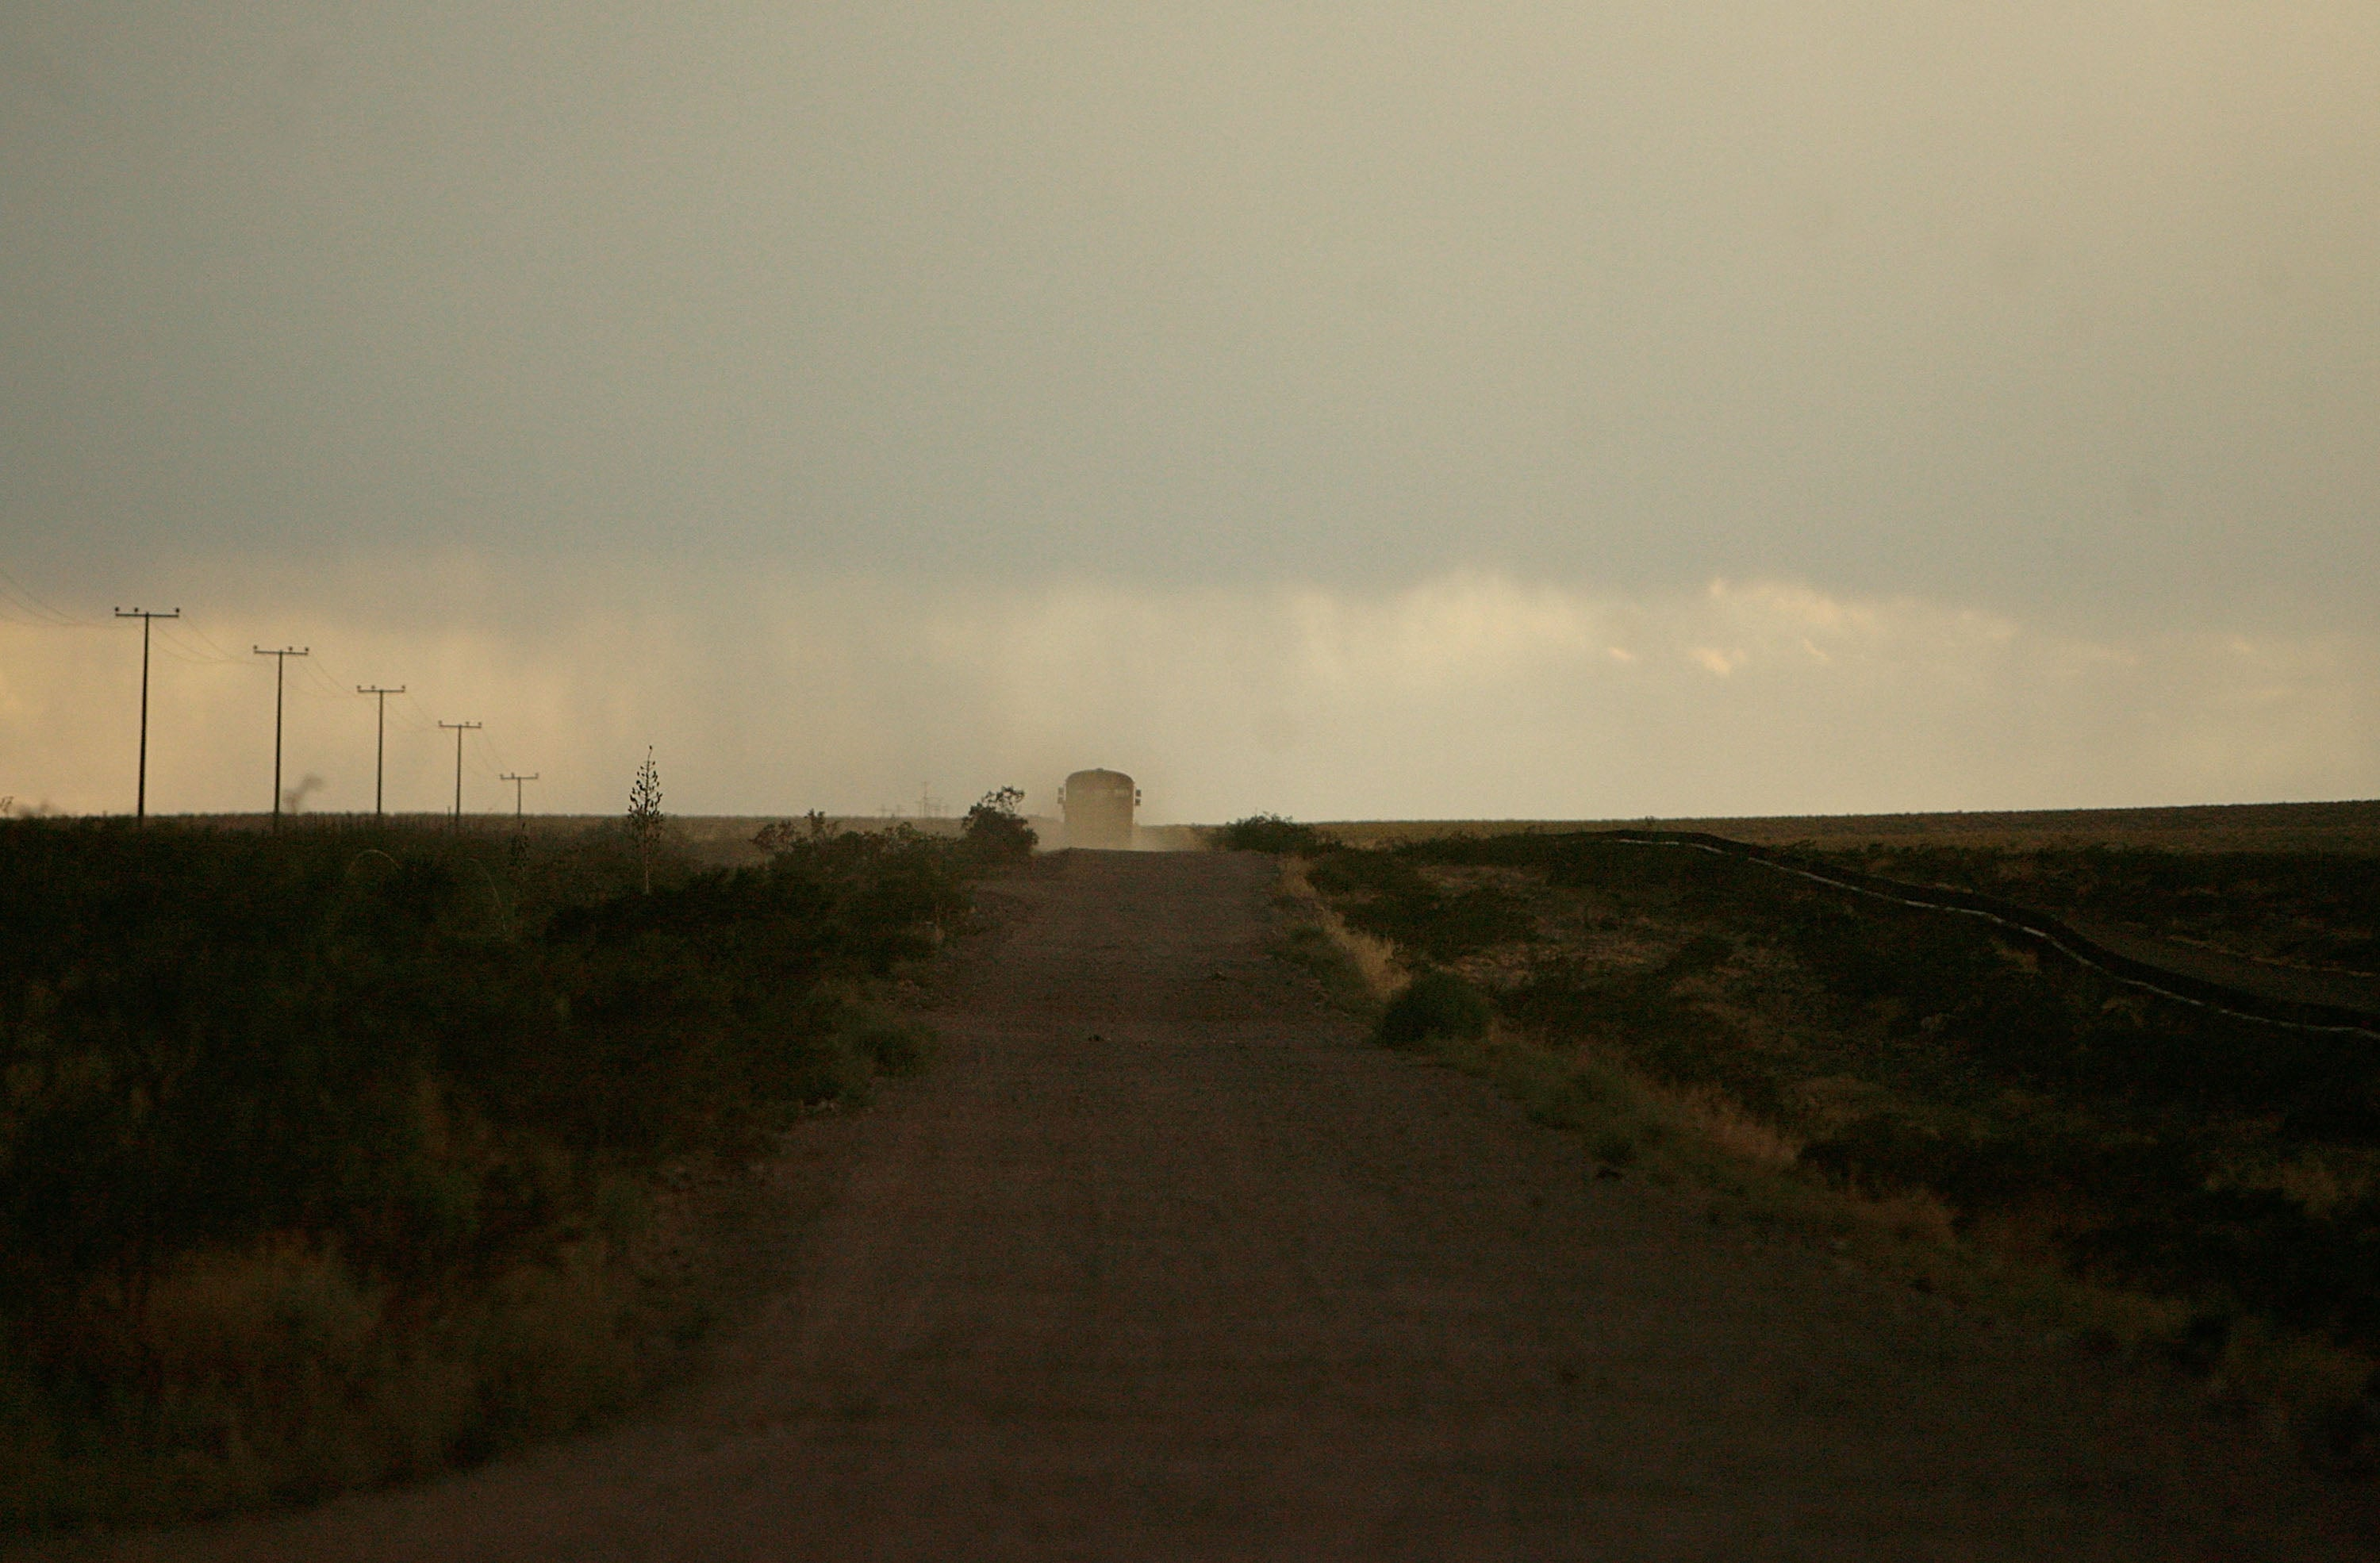 A bus is seen in the distance on a dirt road through the dust and sparse brush of a desert at dusk.